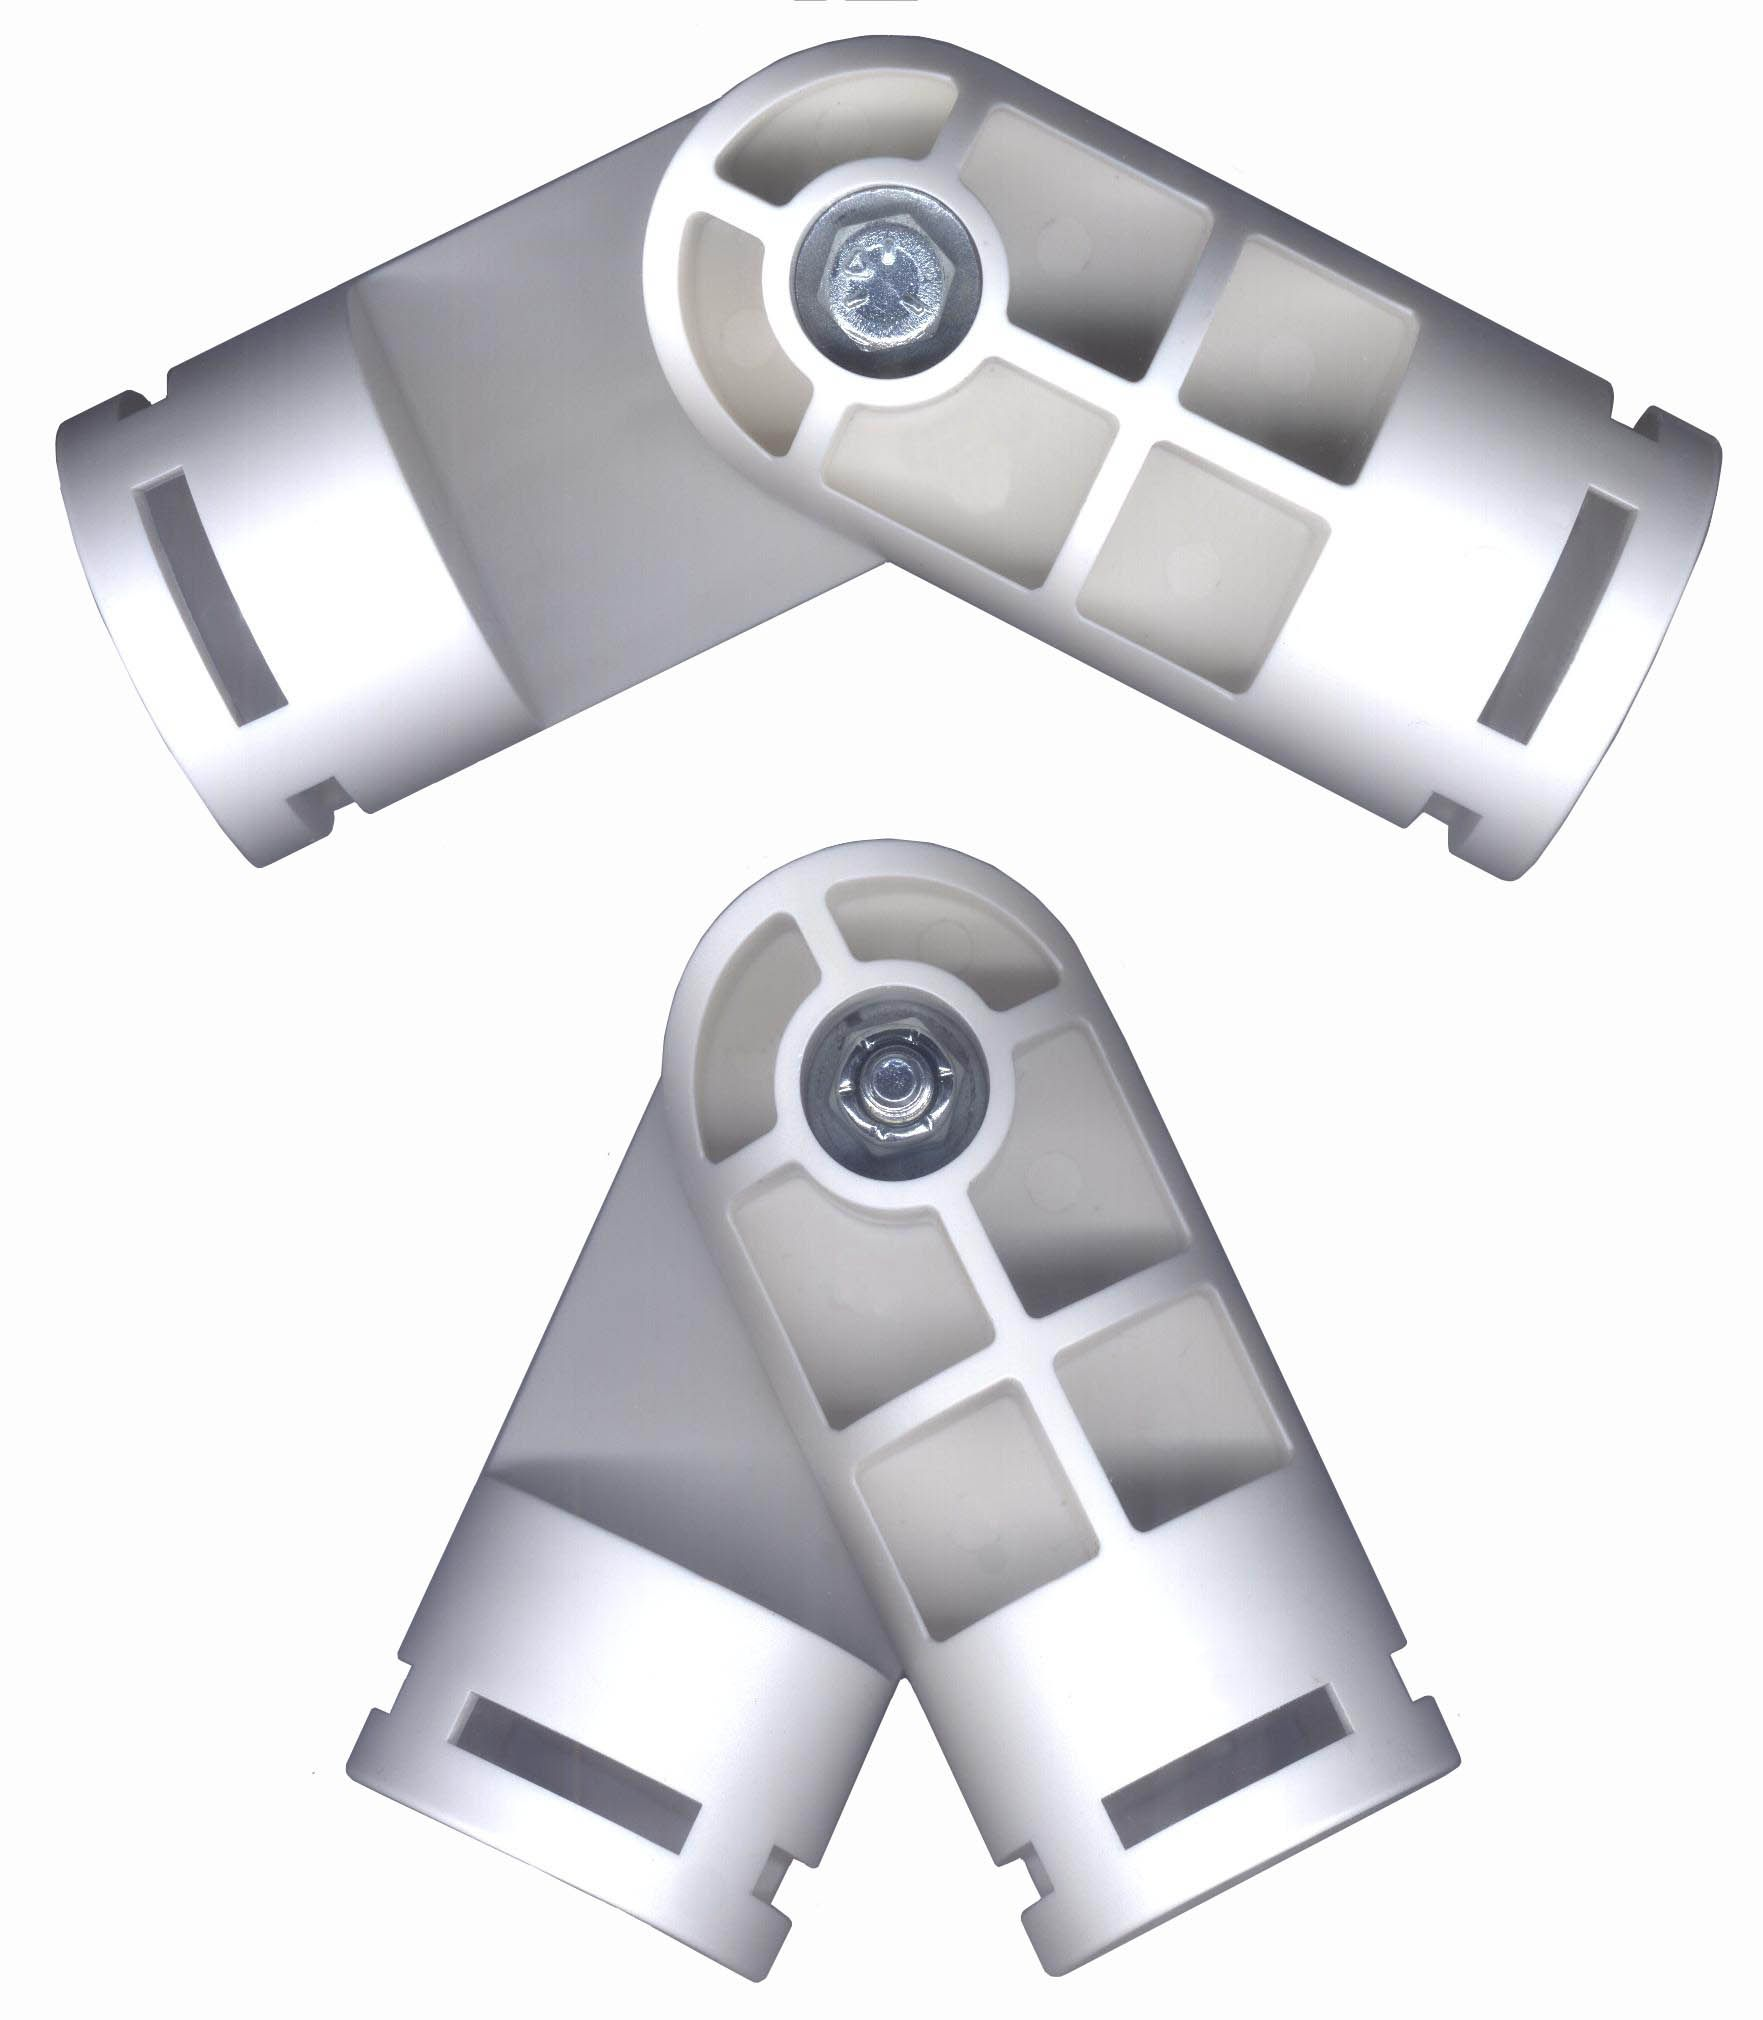 Pvc Joints White Pvc Fittings Creative Shelters Adjustable Joint Fittings